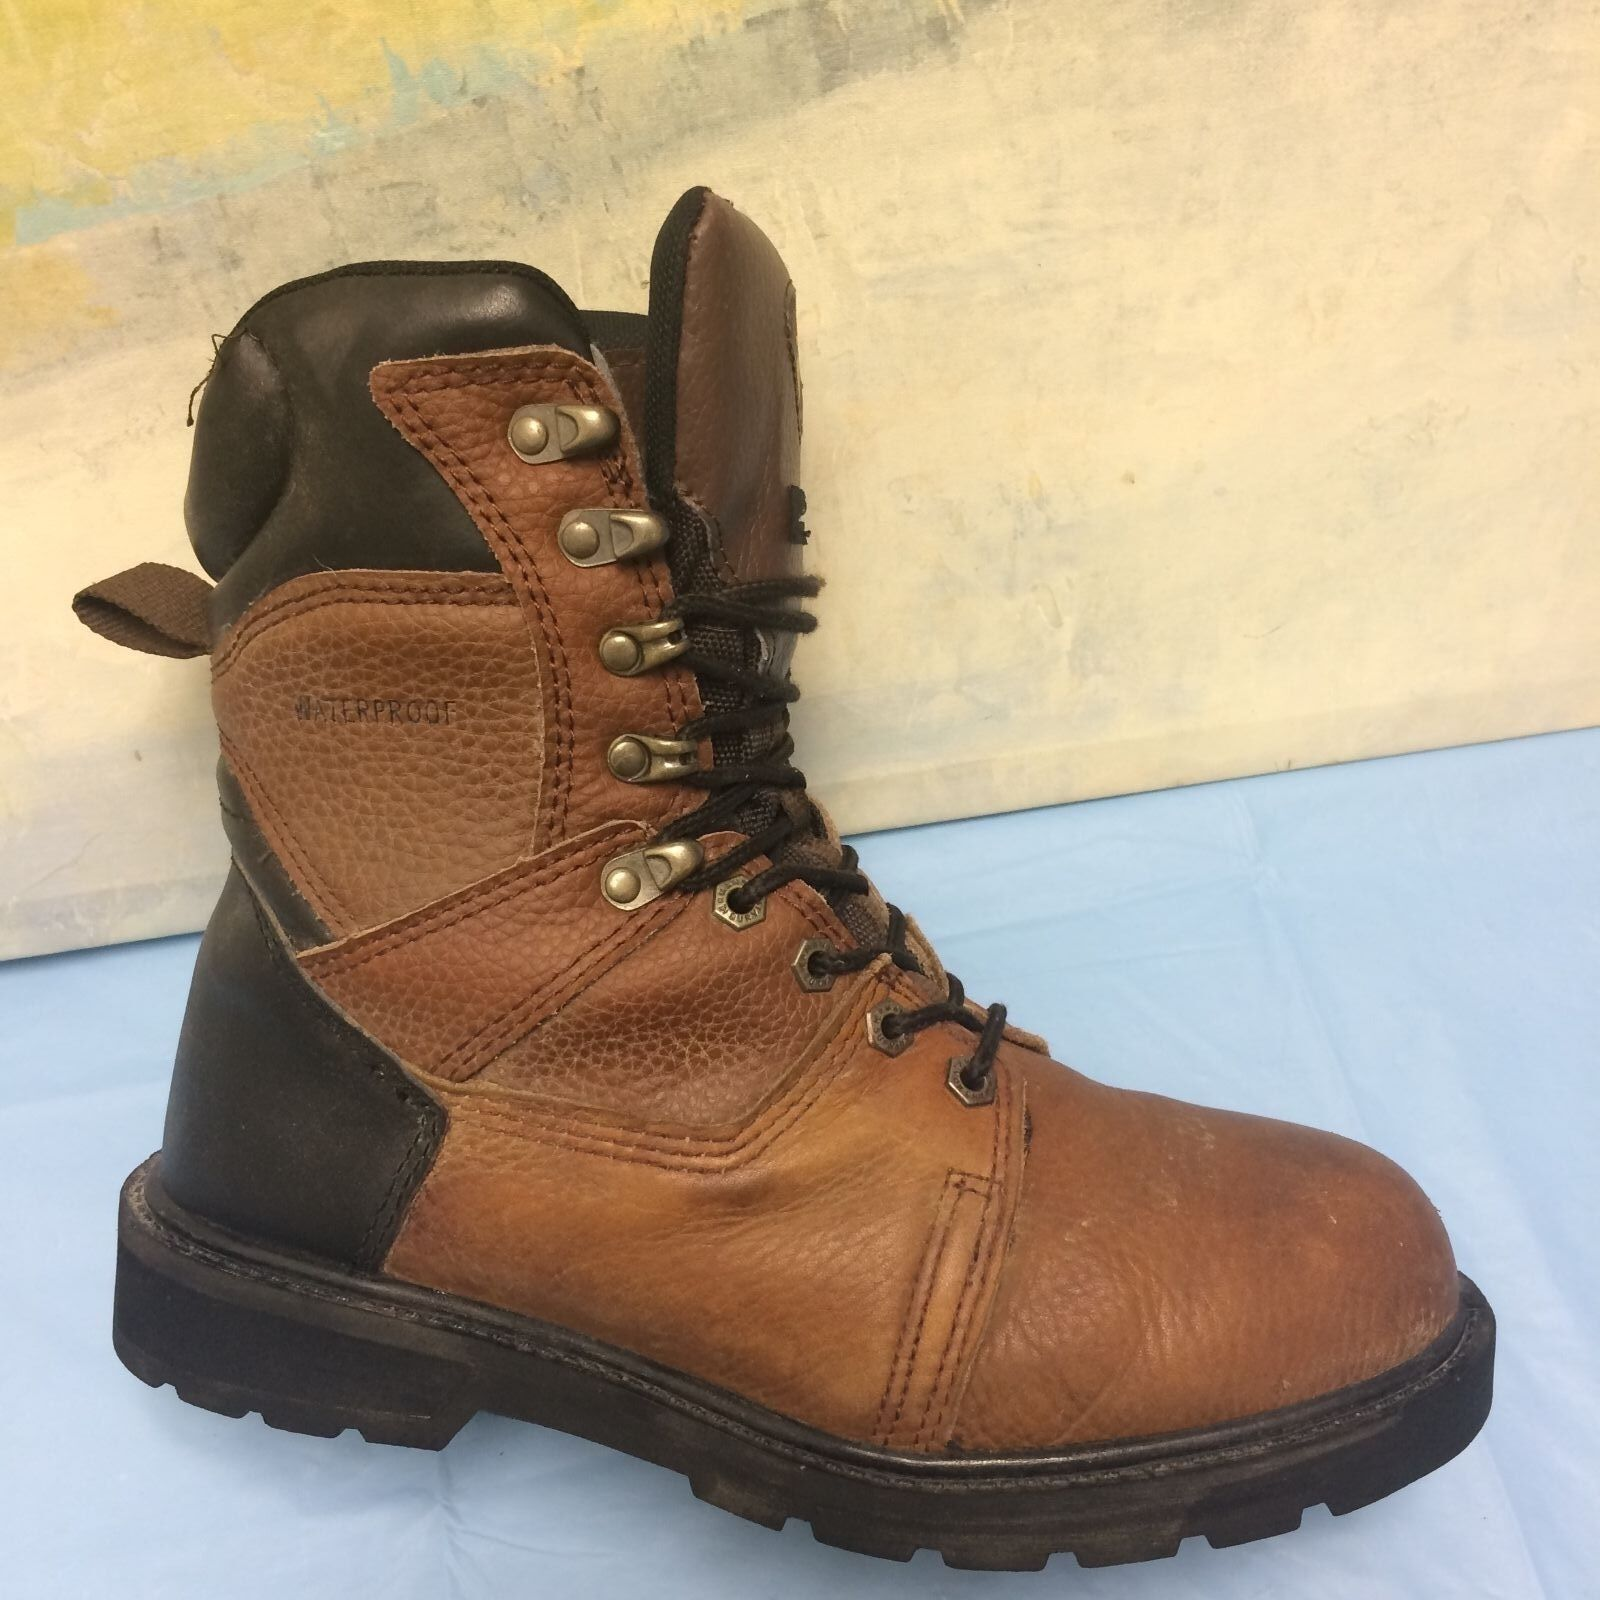 HERMAN SURVIVORS MEN'S BOOTS WATERPROOF THERMOLITE BROWN LEATHER 9.5M